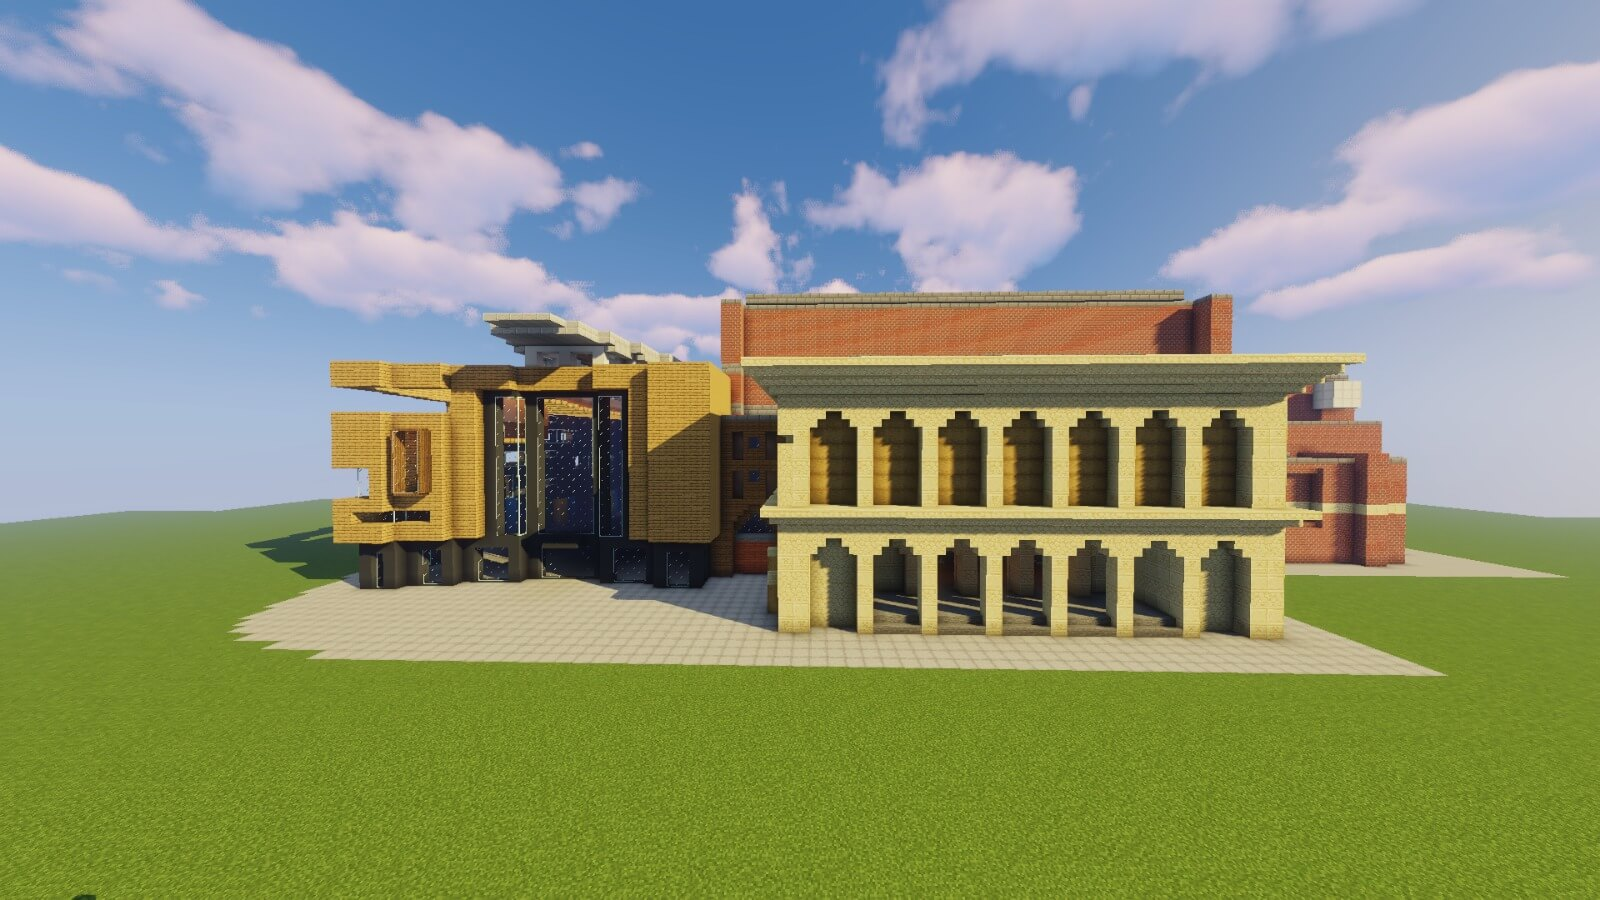 Exterior view of the Minecraft Colston Hall